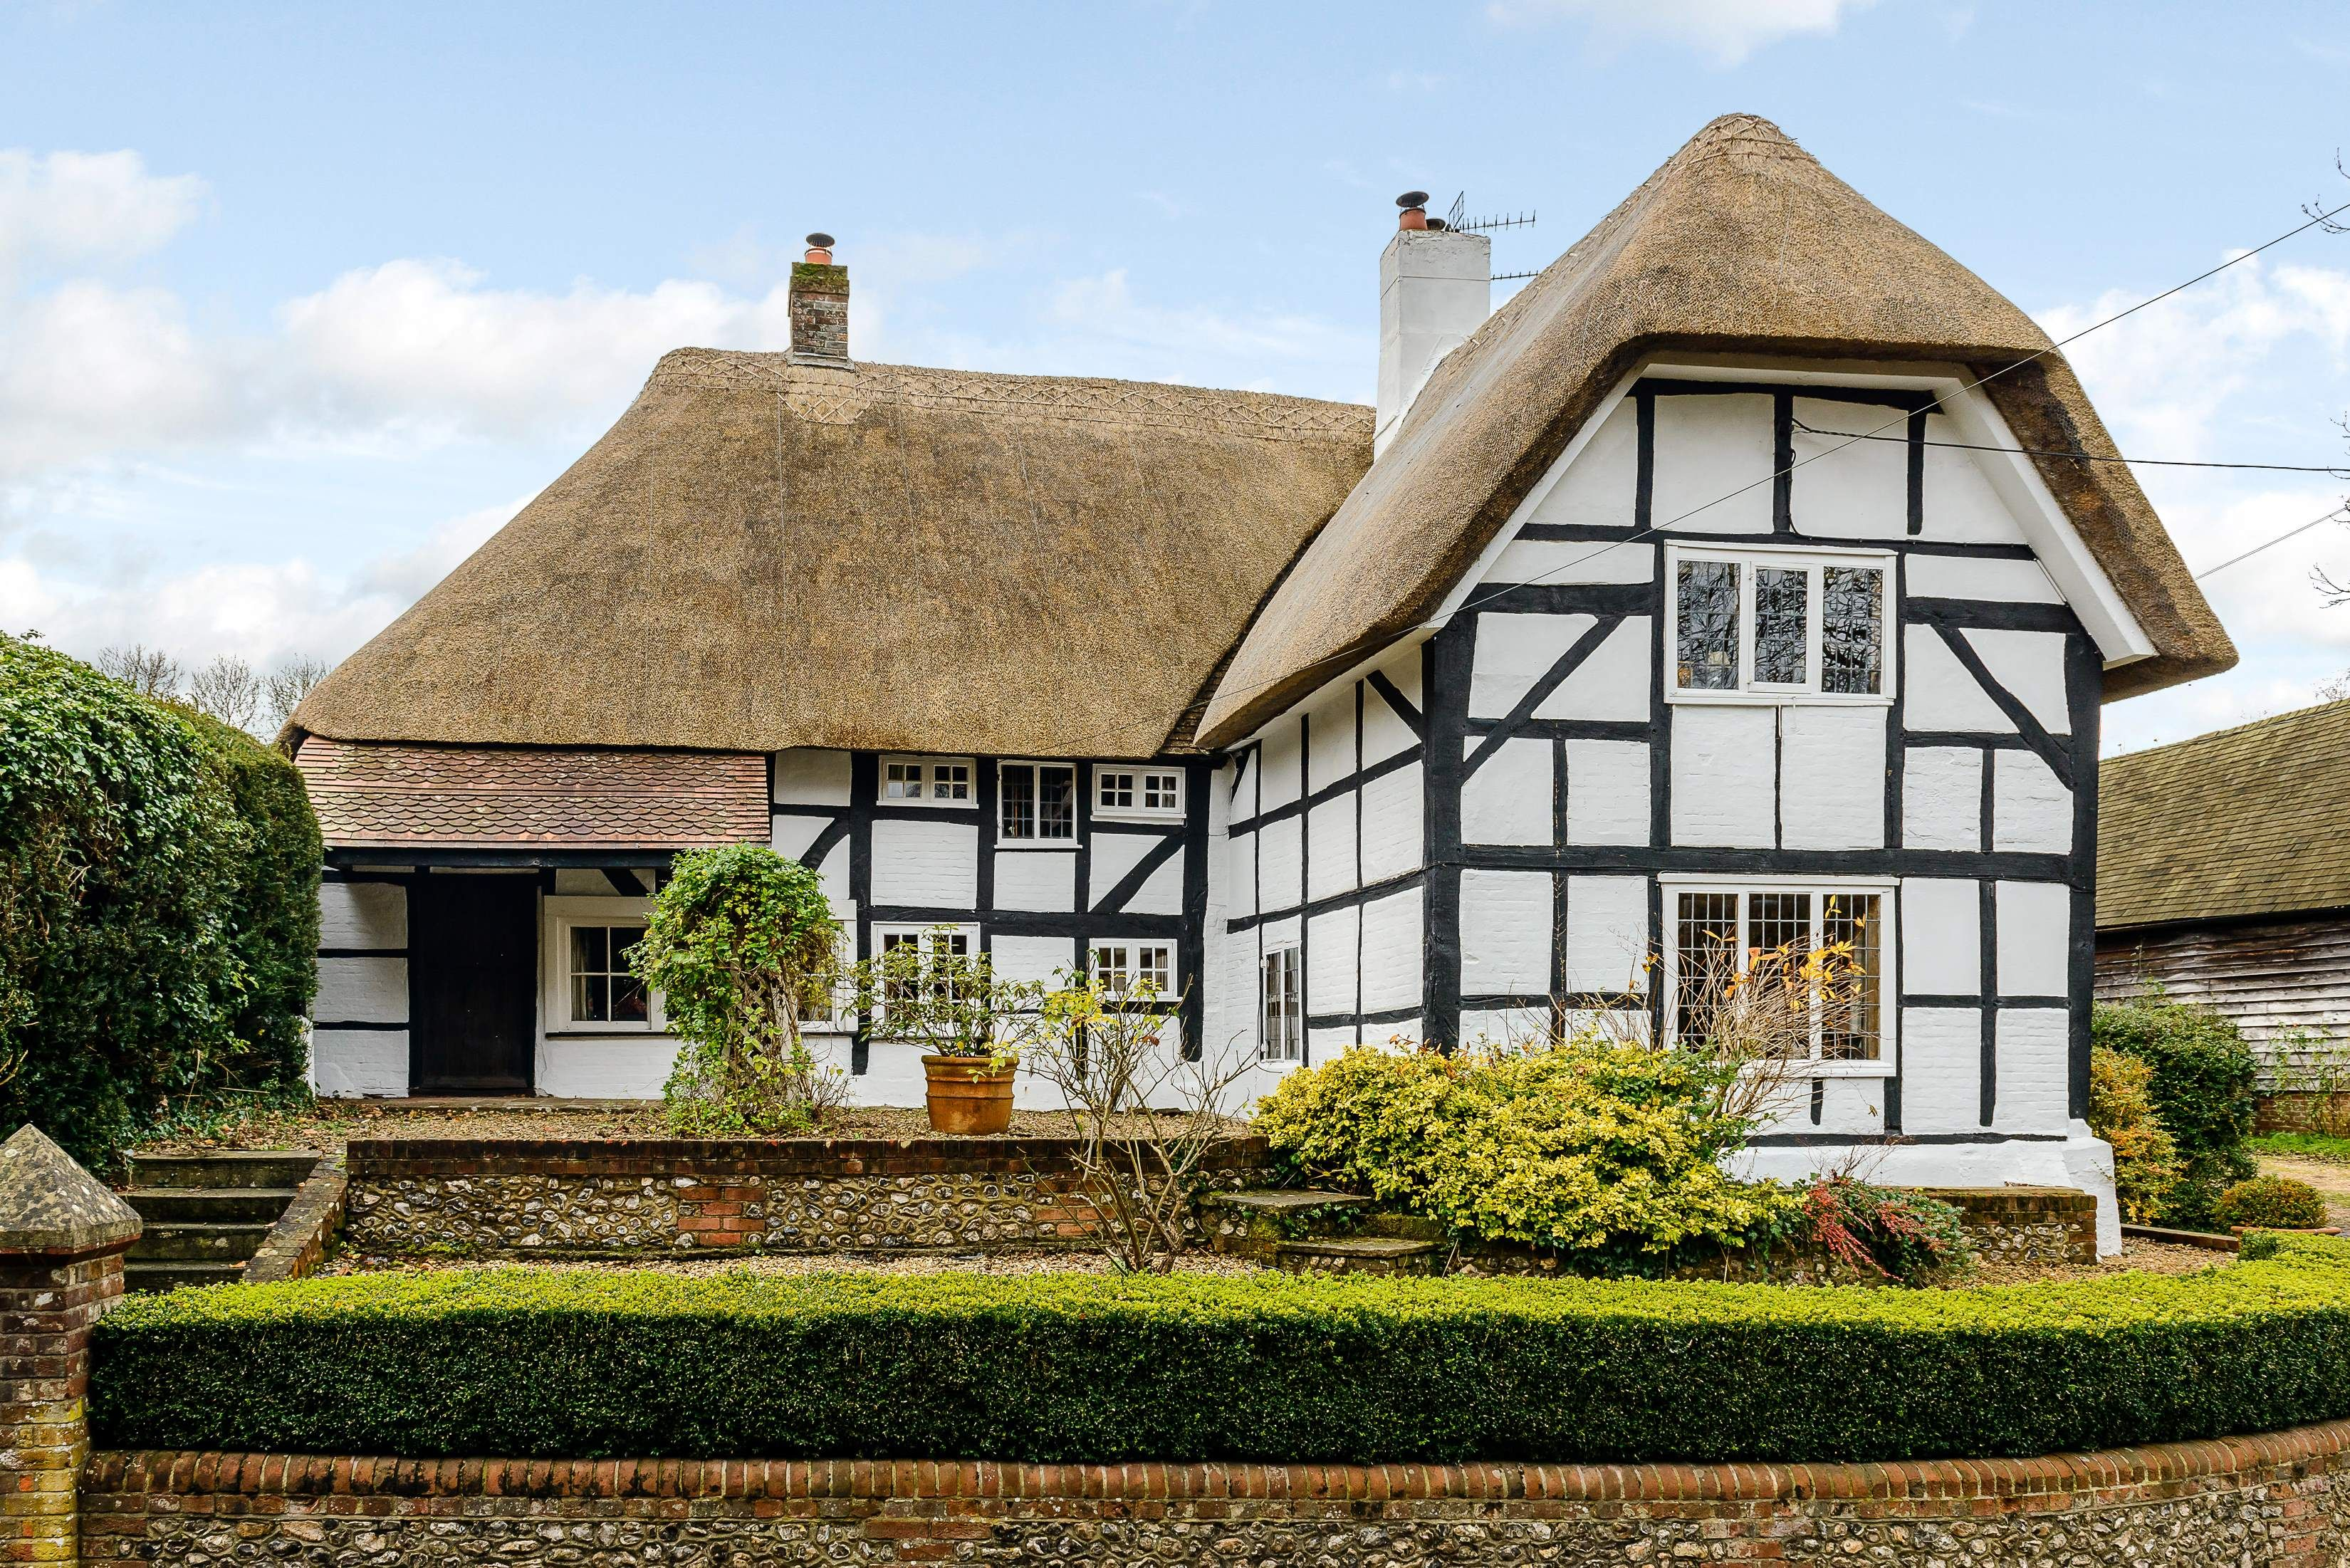 400-year-old Thatched Cottage For Sale In Hampshire - Country Homes ...